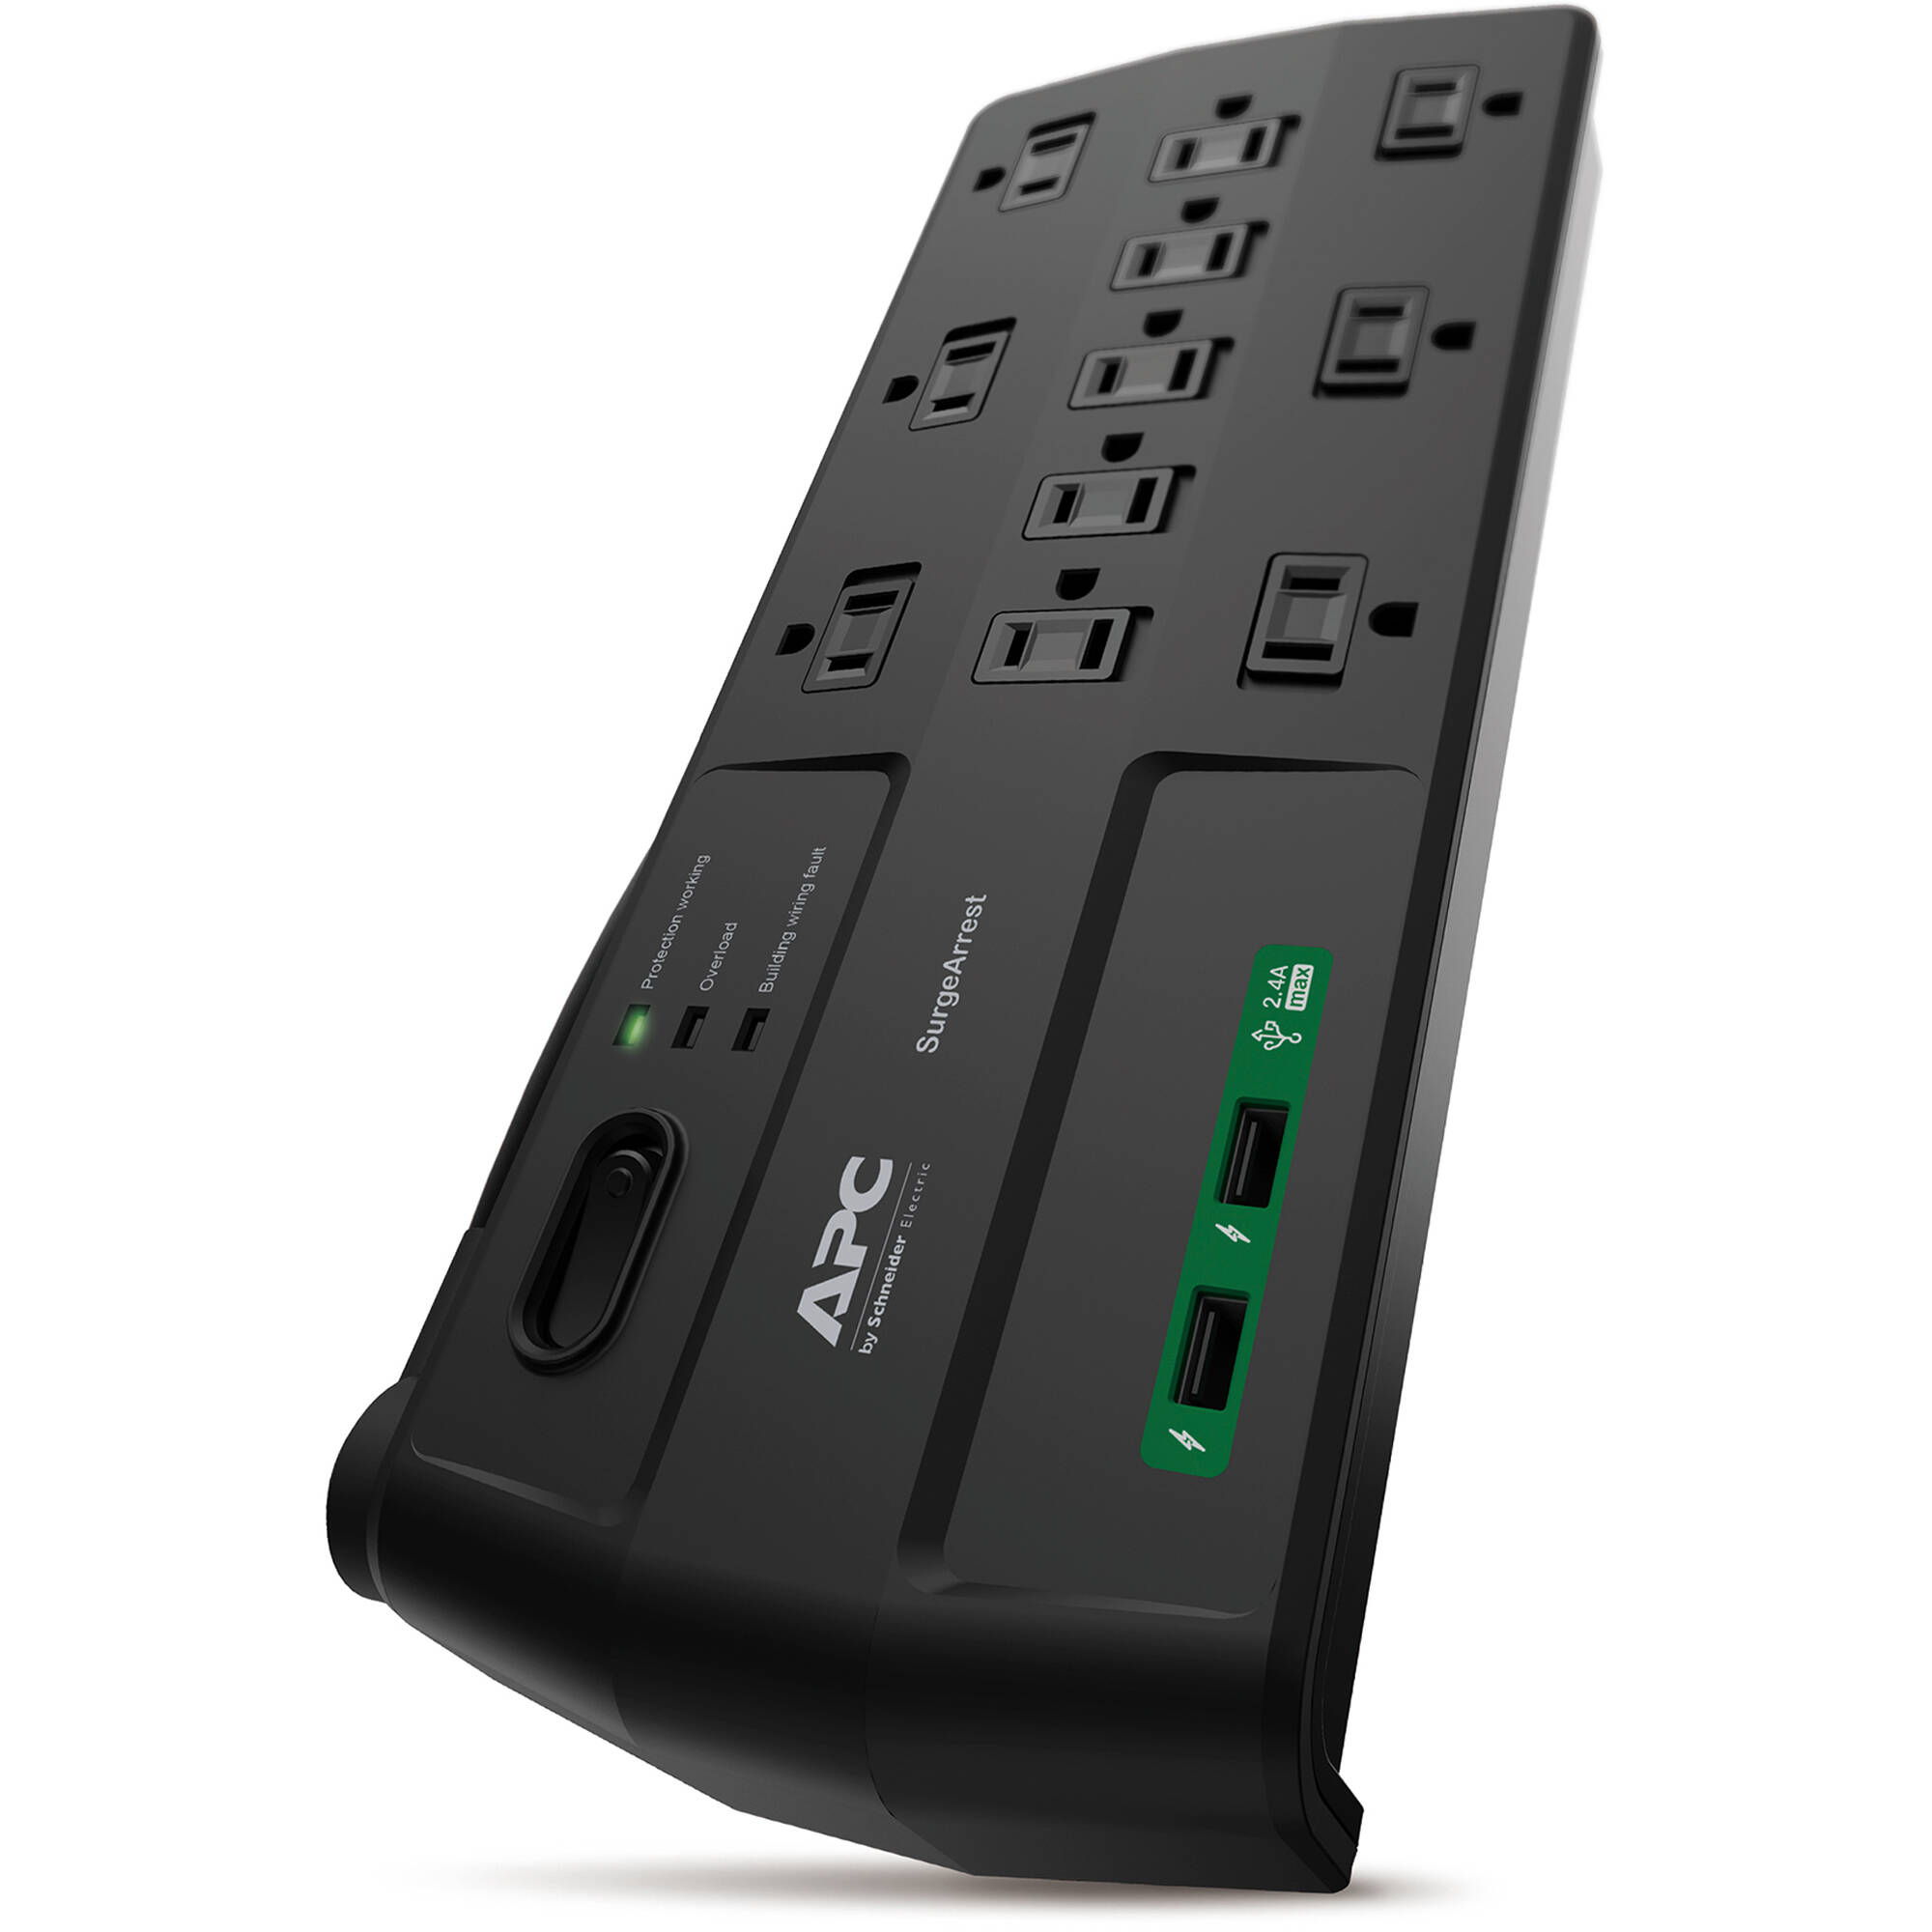 Apc p11u2 surgearrest 11 outlet surge protector further Troubleshooting 16626396 furthermore B00CLYMMCC together with Useful Gadgets The Portable Electronics Charging Station as well 262582313278. on power strip surge protector